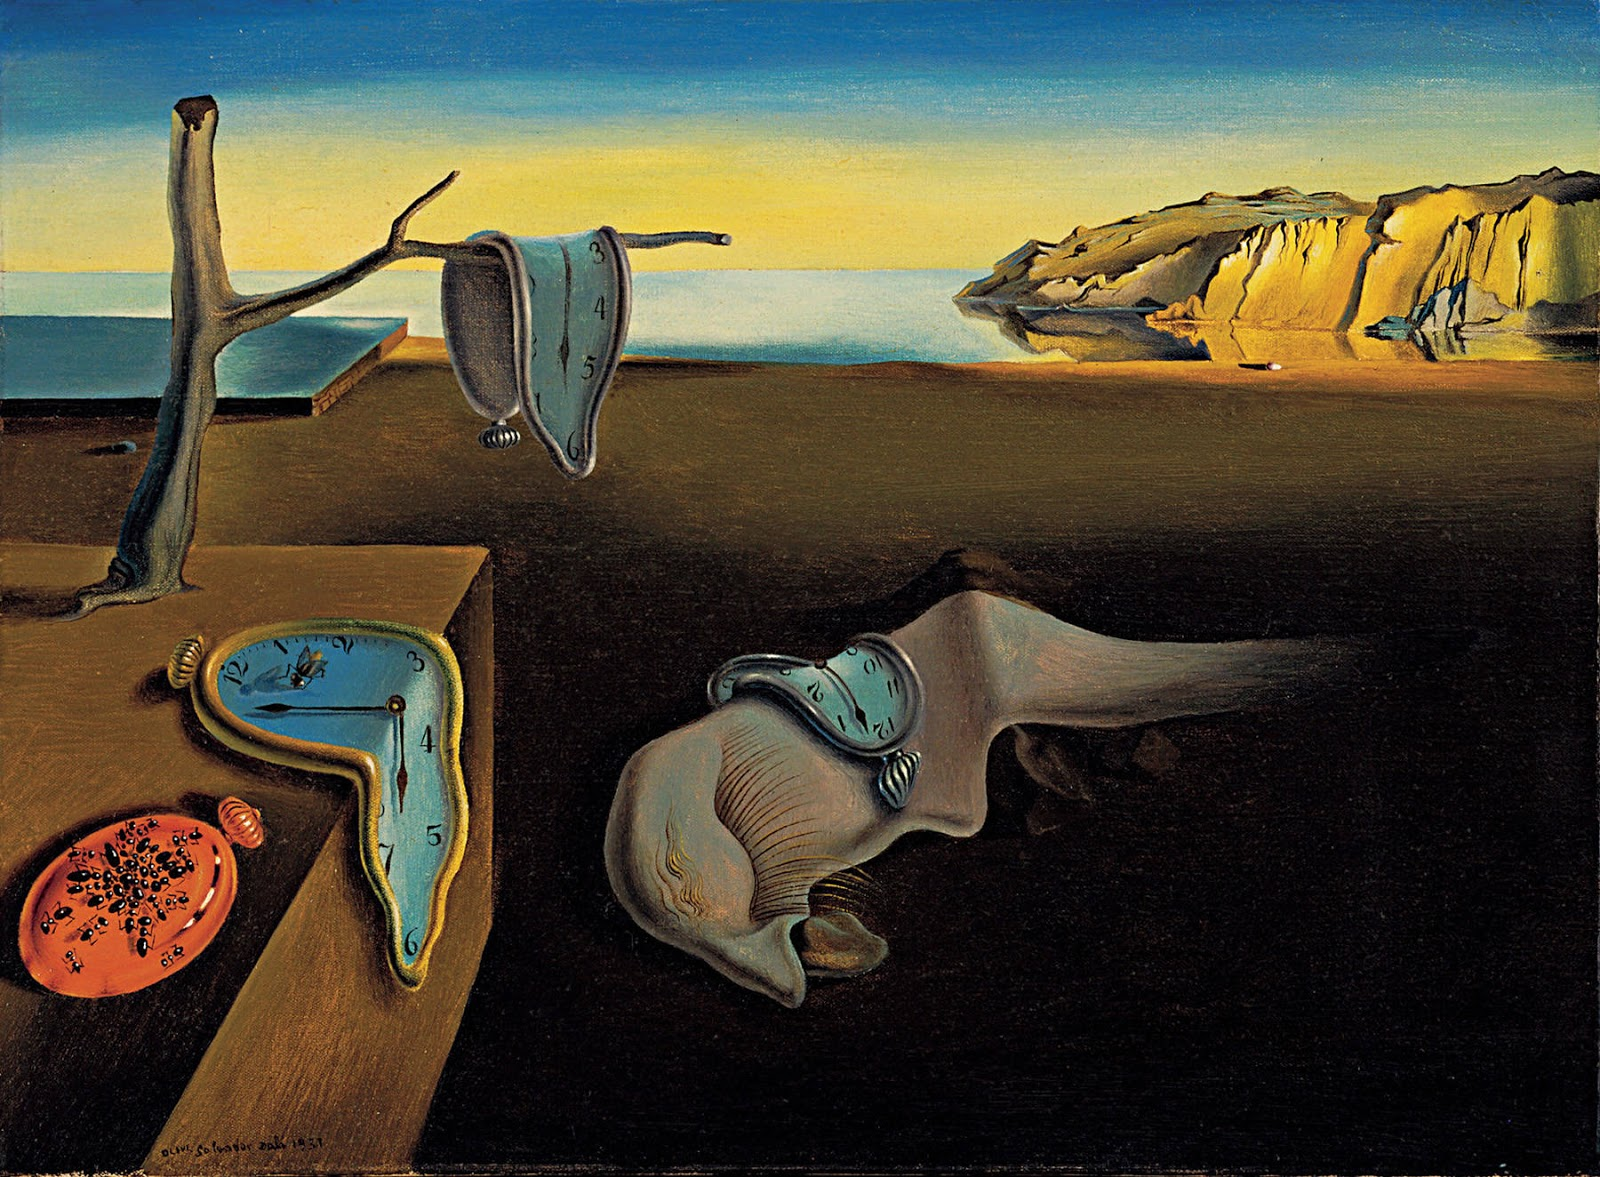 009 Belleğin Azmi The Persistence of Memory - Dalí